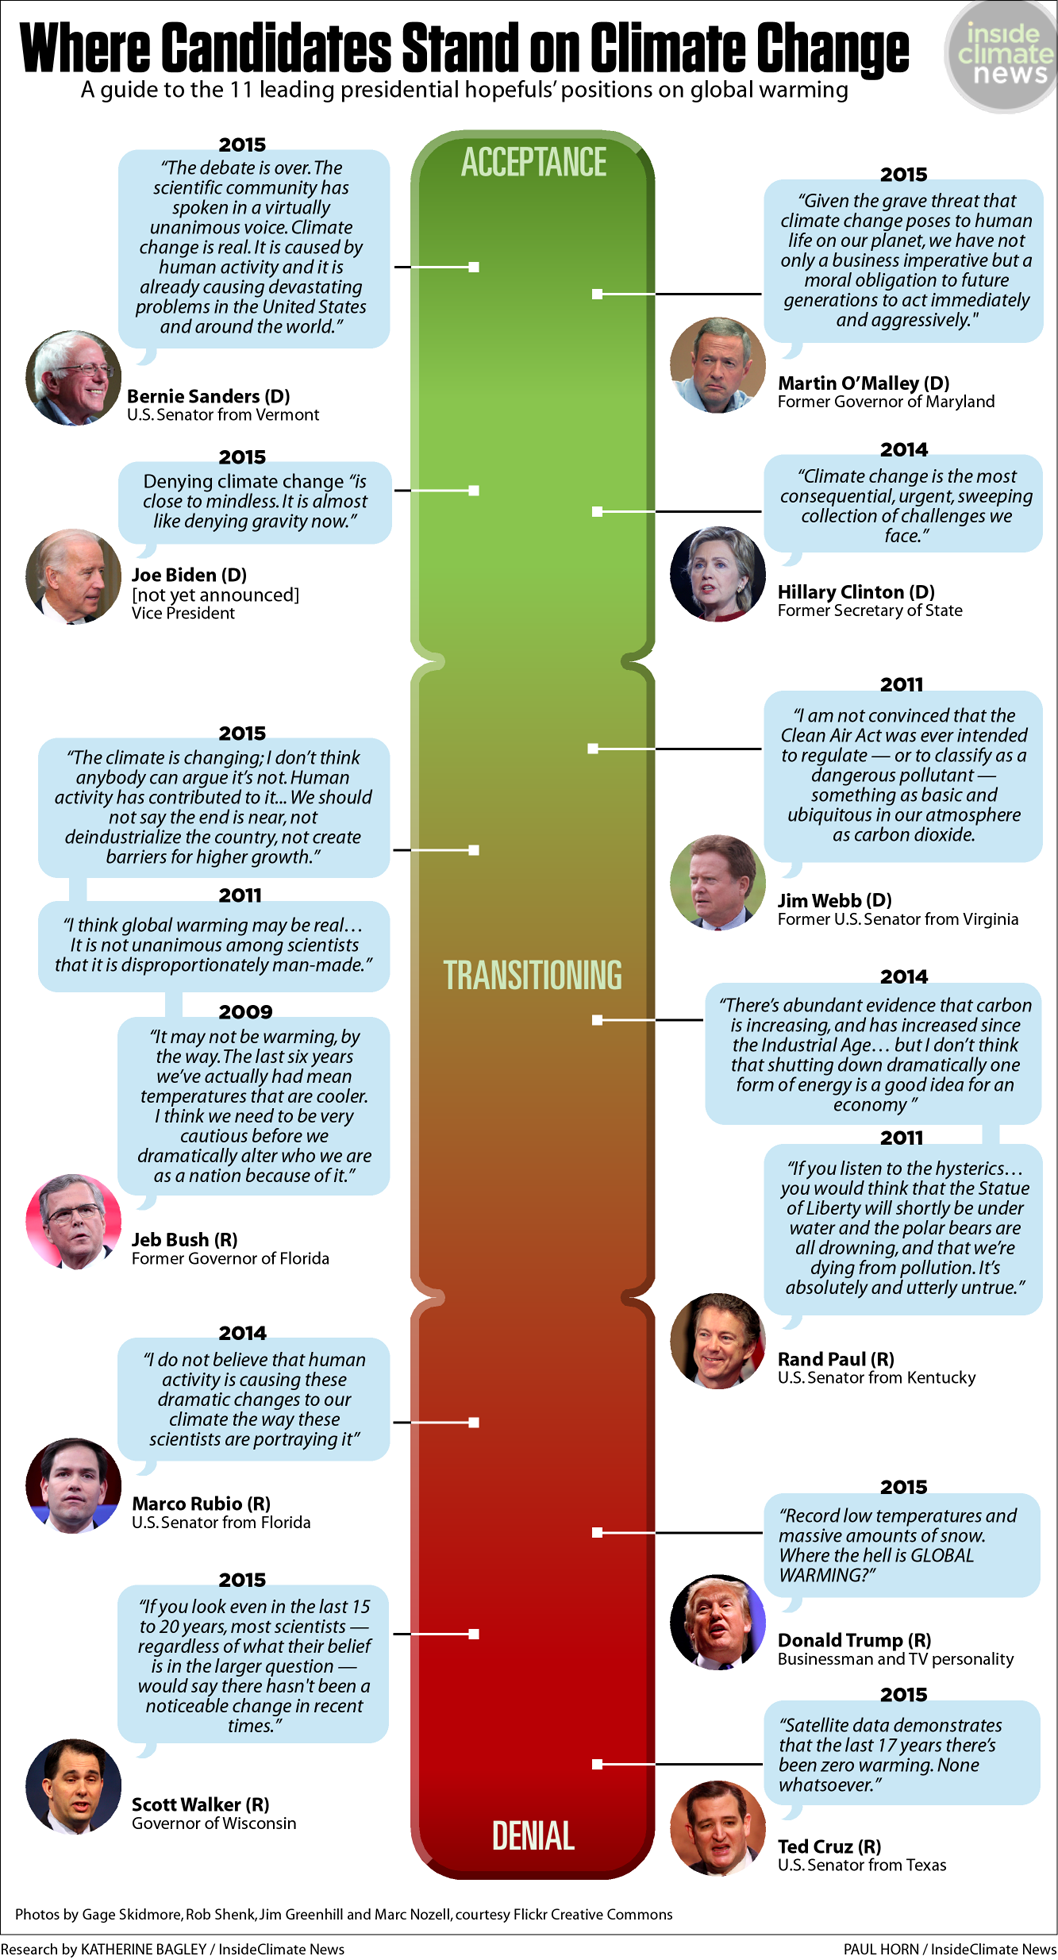 Where the top presidential candidates stand on climate change